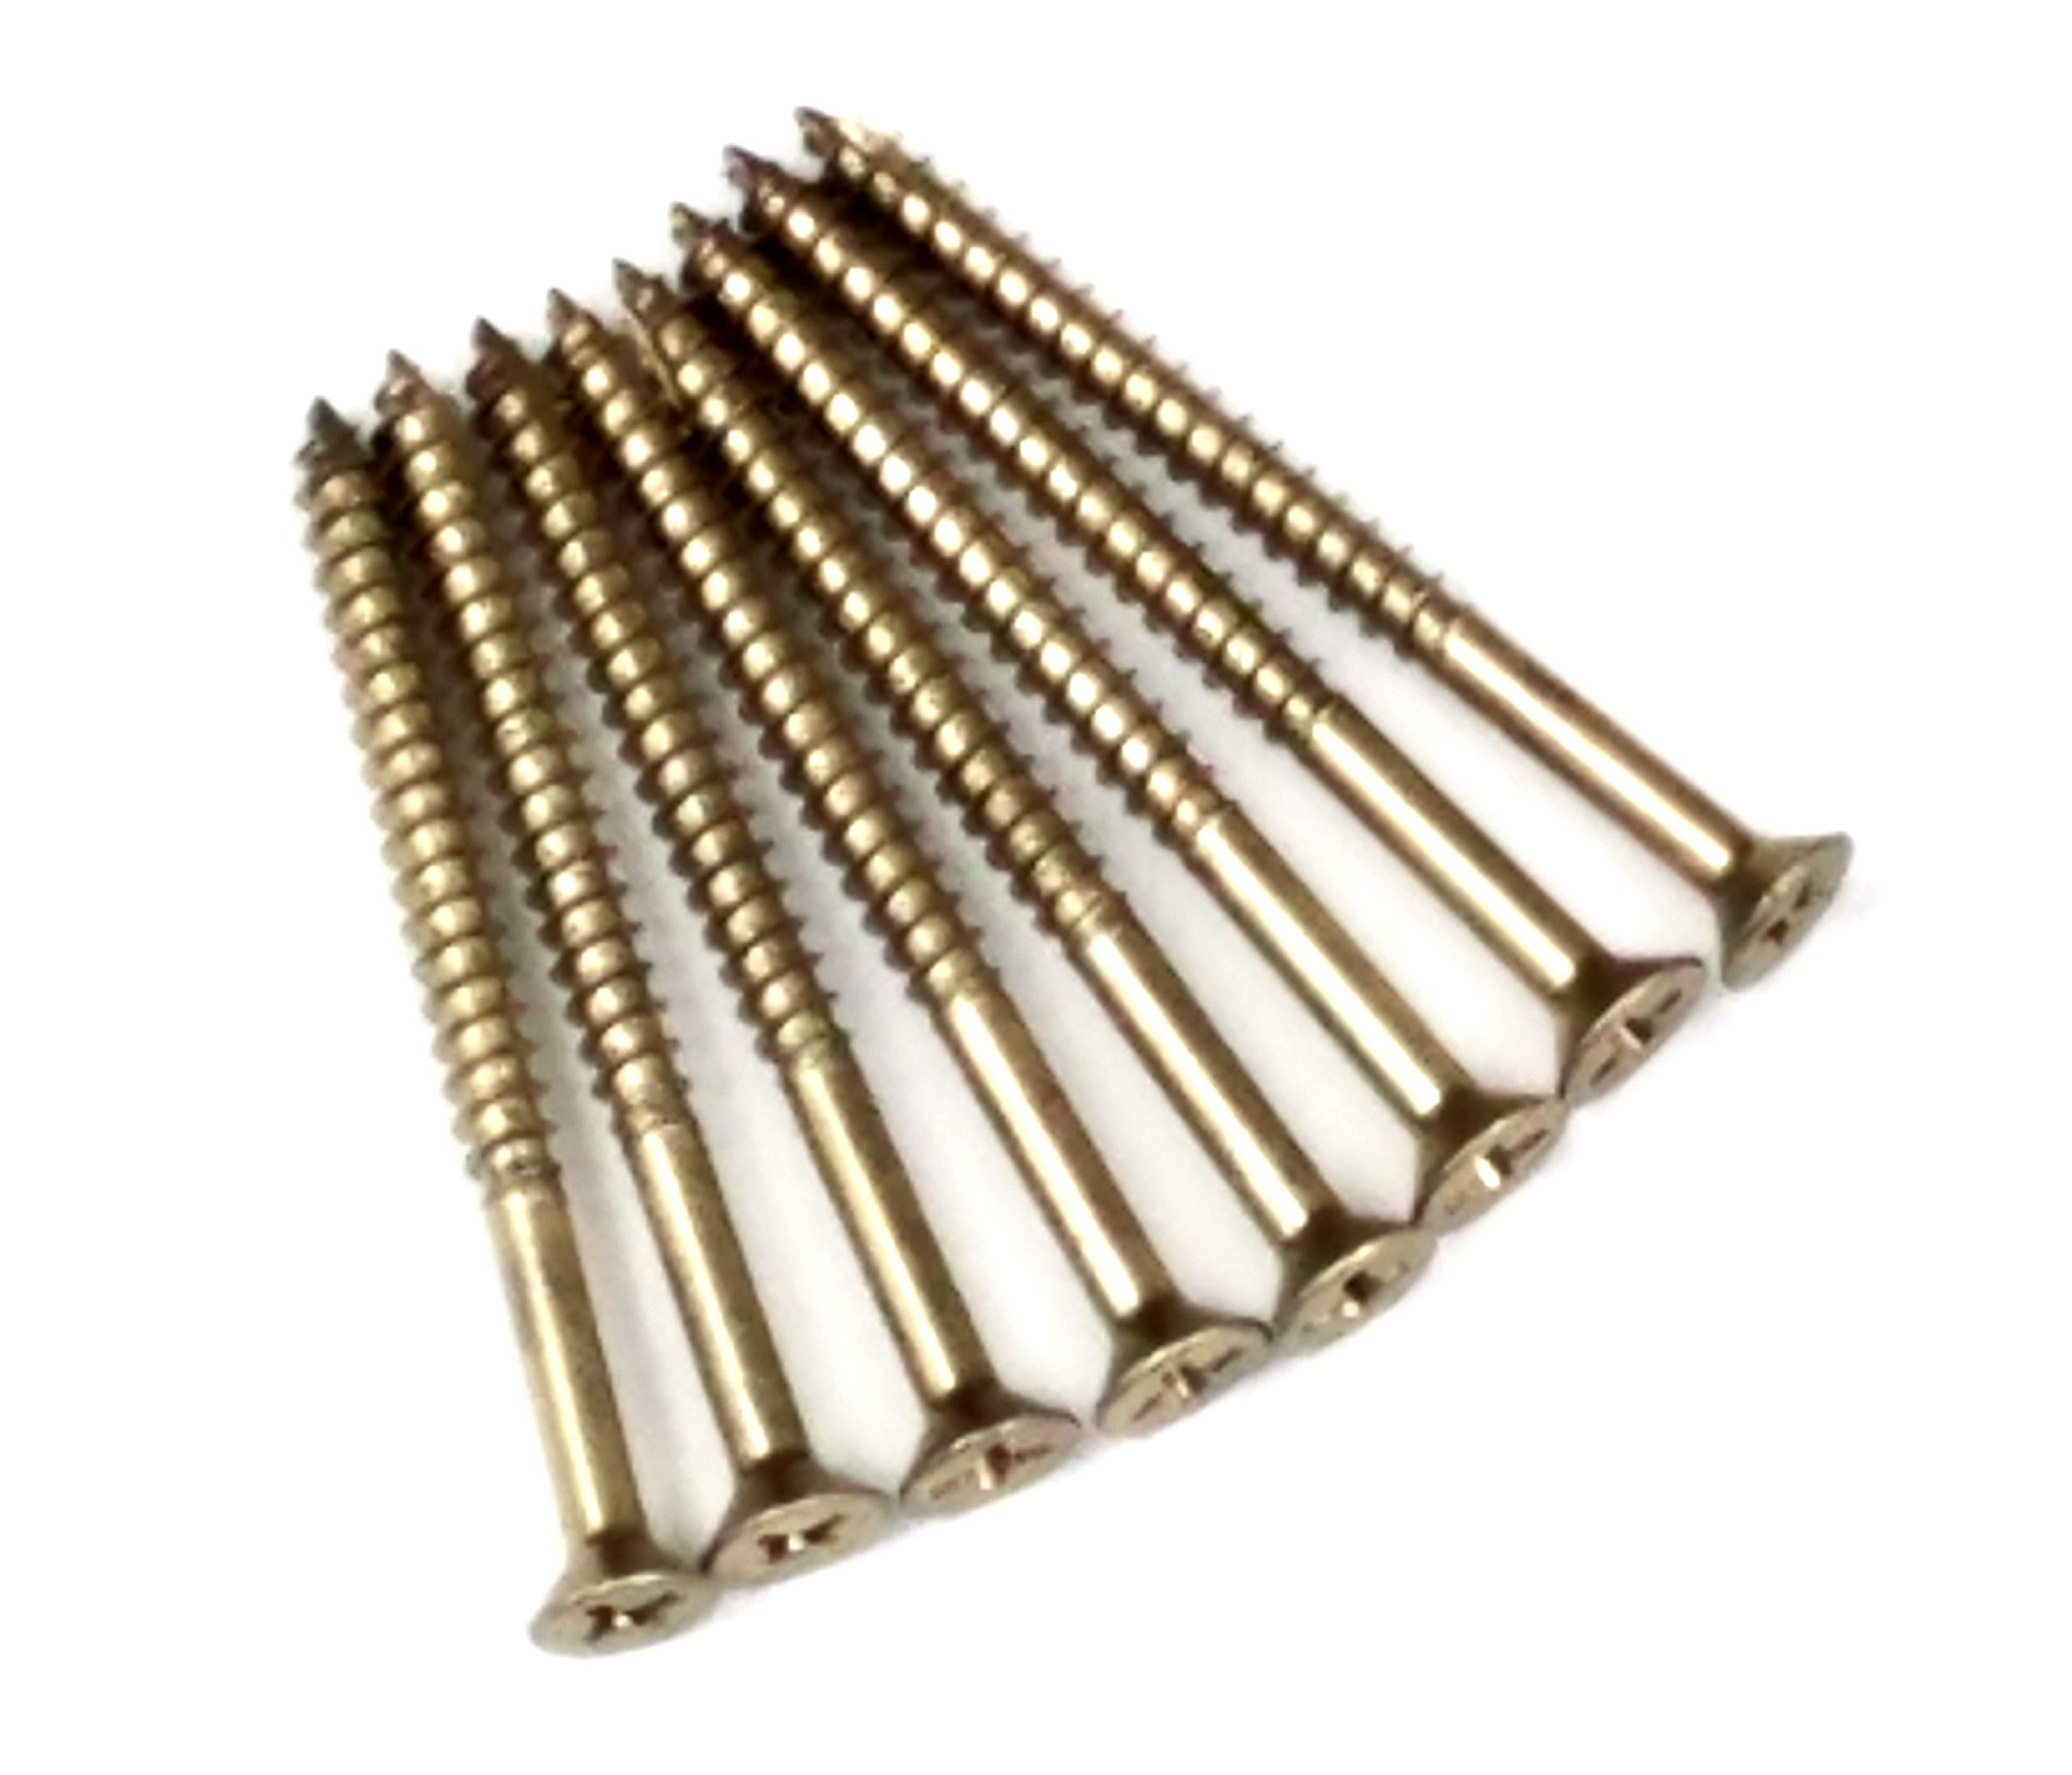 Bright Polished Brass Wood Screws #9 X 2 1/4'' for Residential Door Hinges - 24 Pack